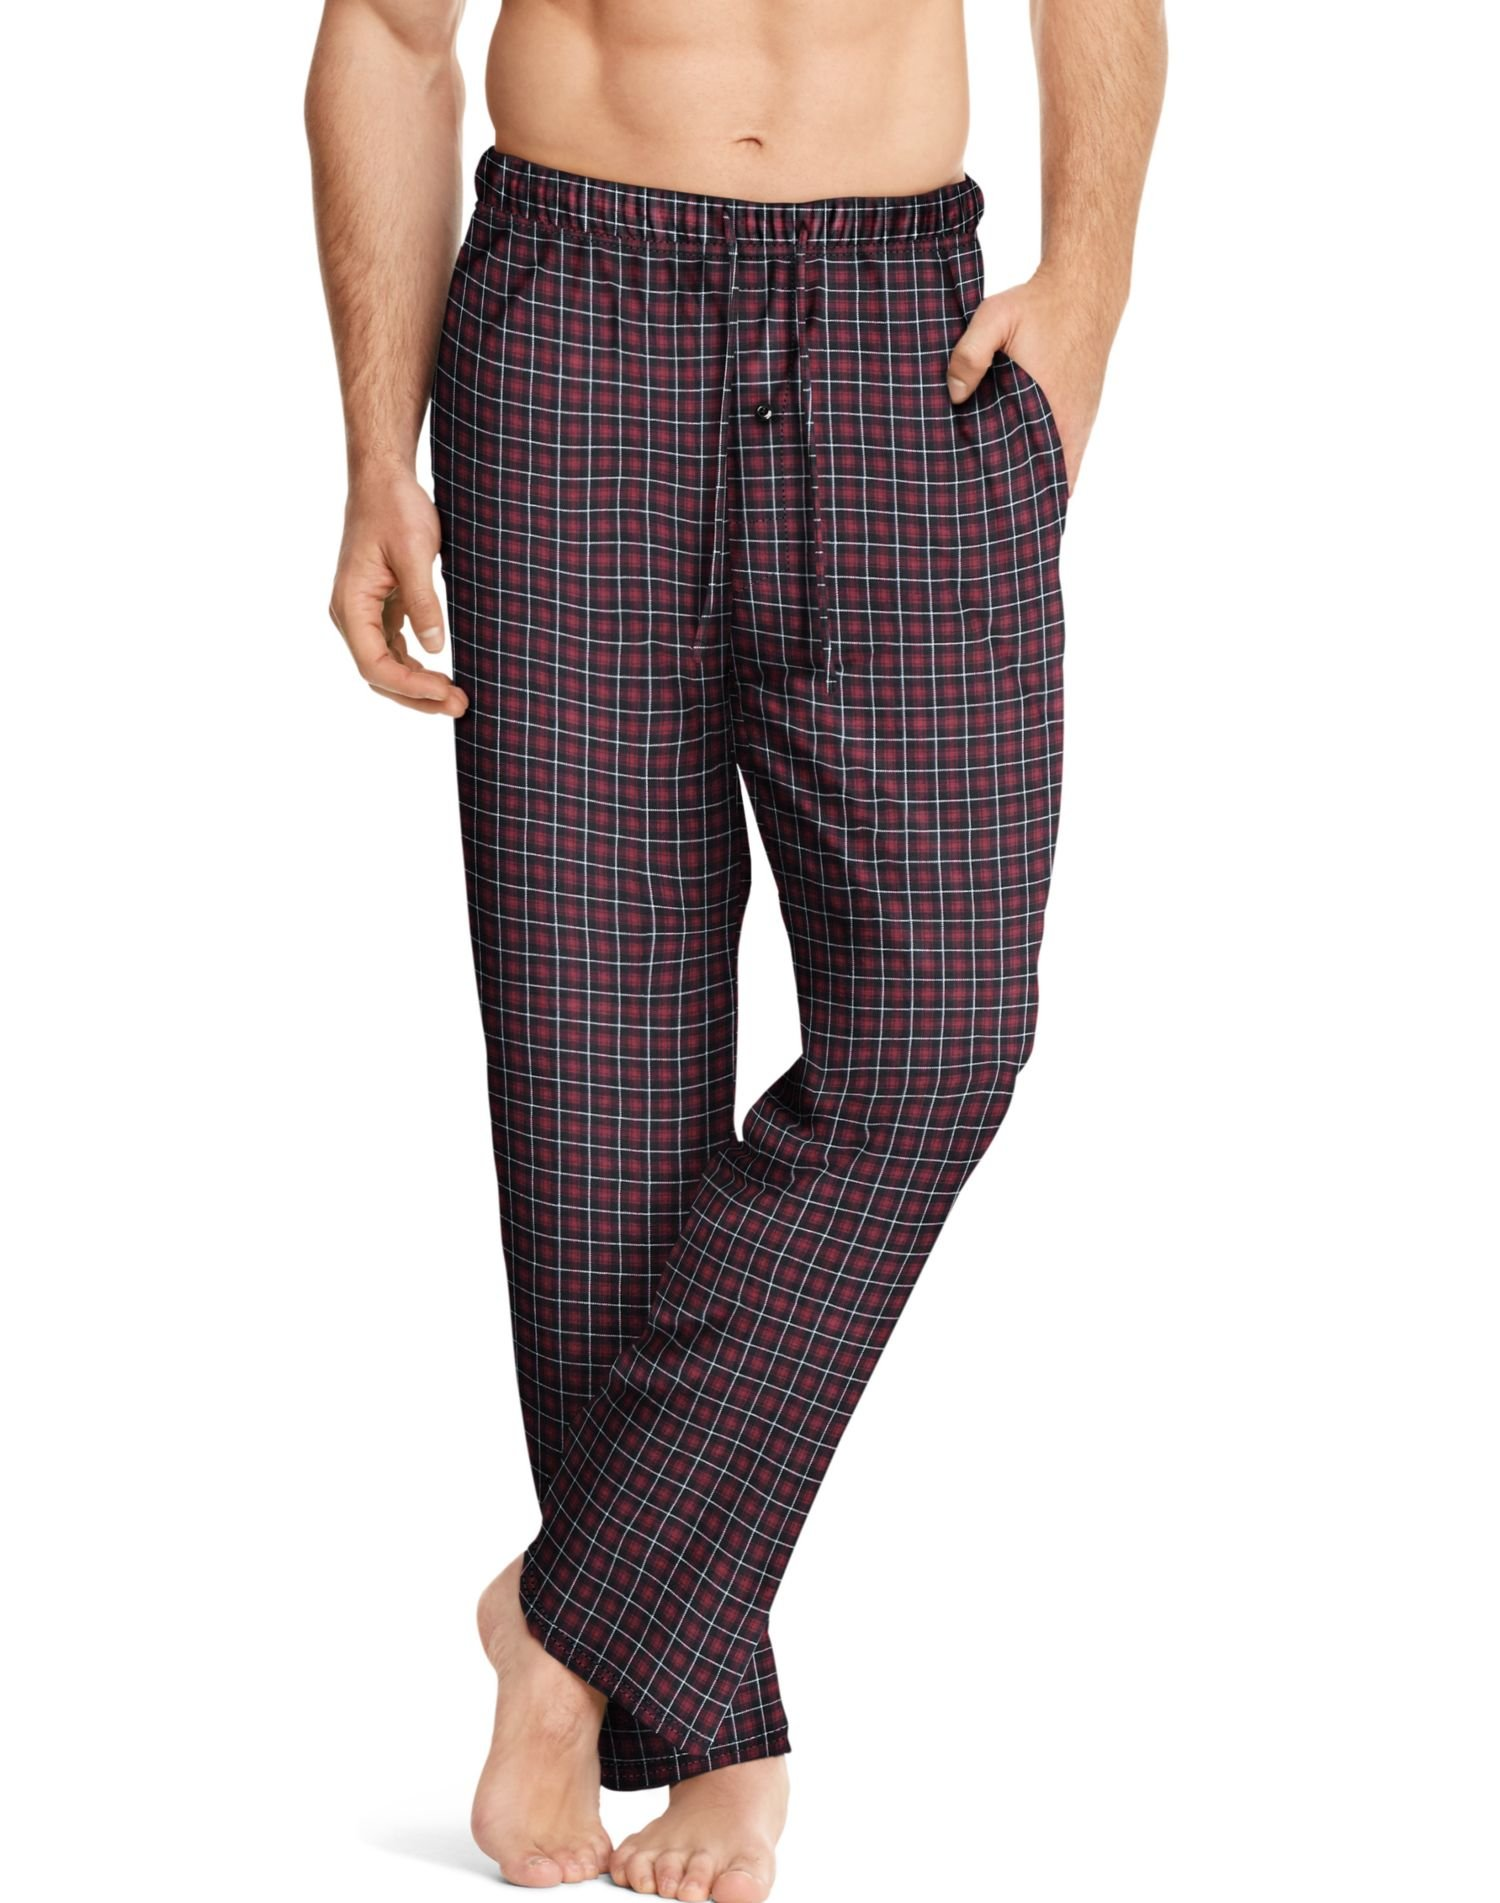 Hanes ComfortSoft Men`s Cotton Printed Lounge Pants - Best-Seller, M by Hanes